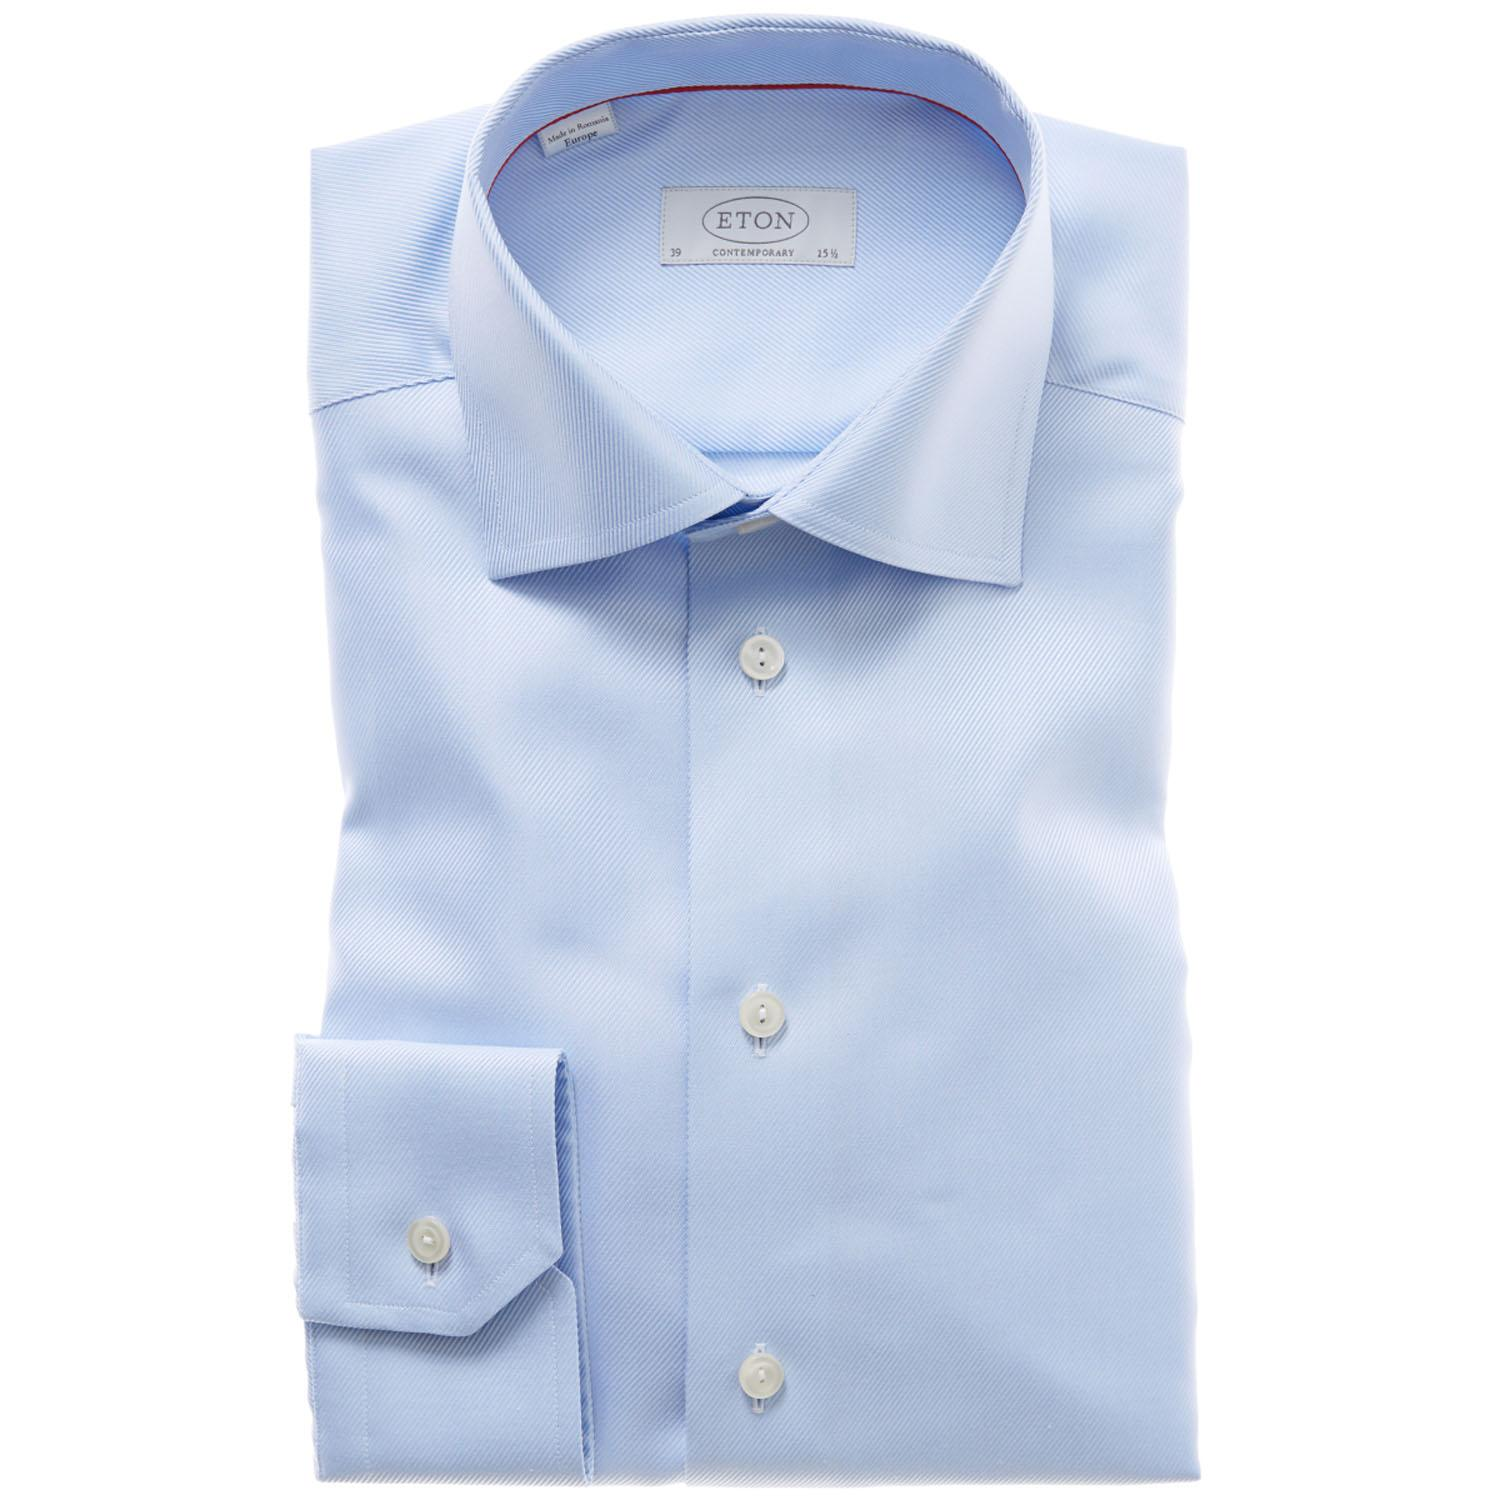 Eton of sweden wrinkle free twill dress shirt in blue for for How do wrinkle free shirts work